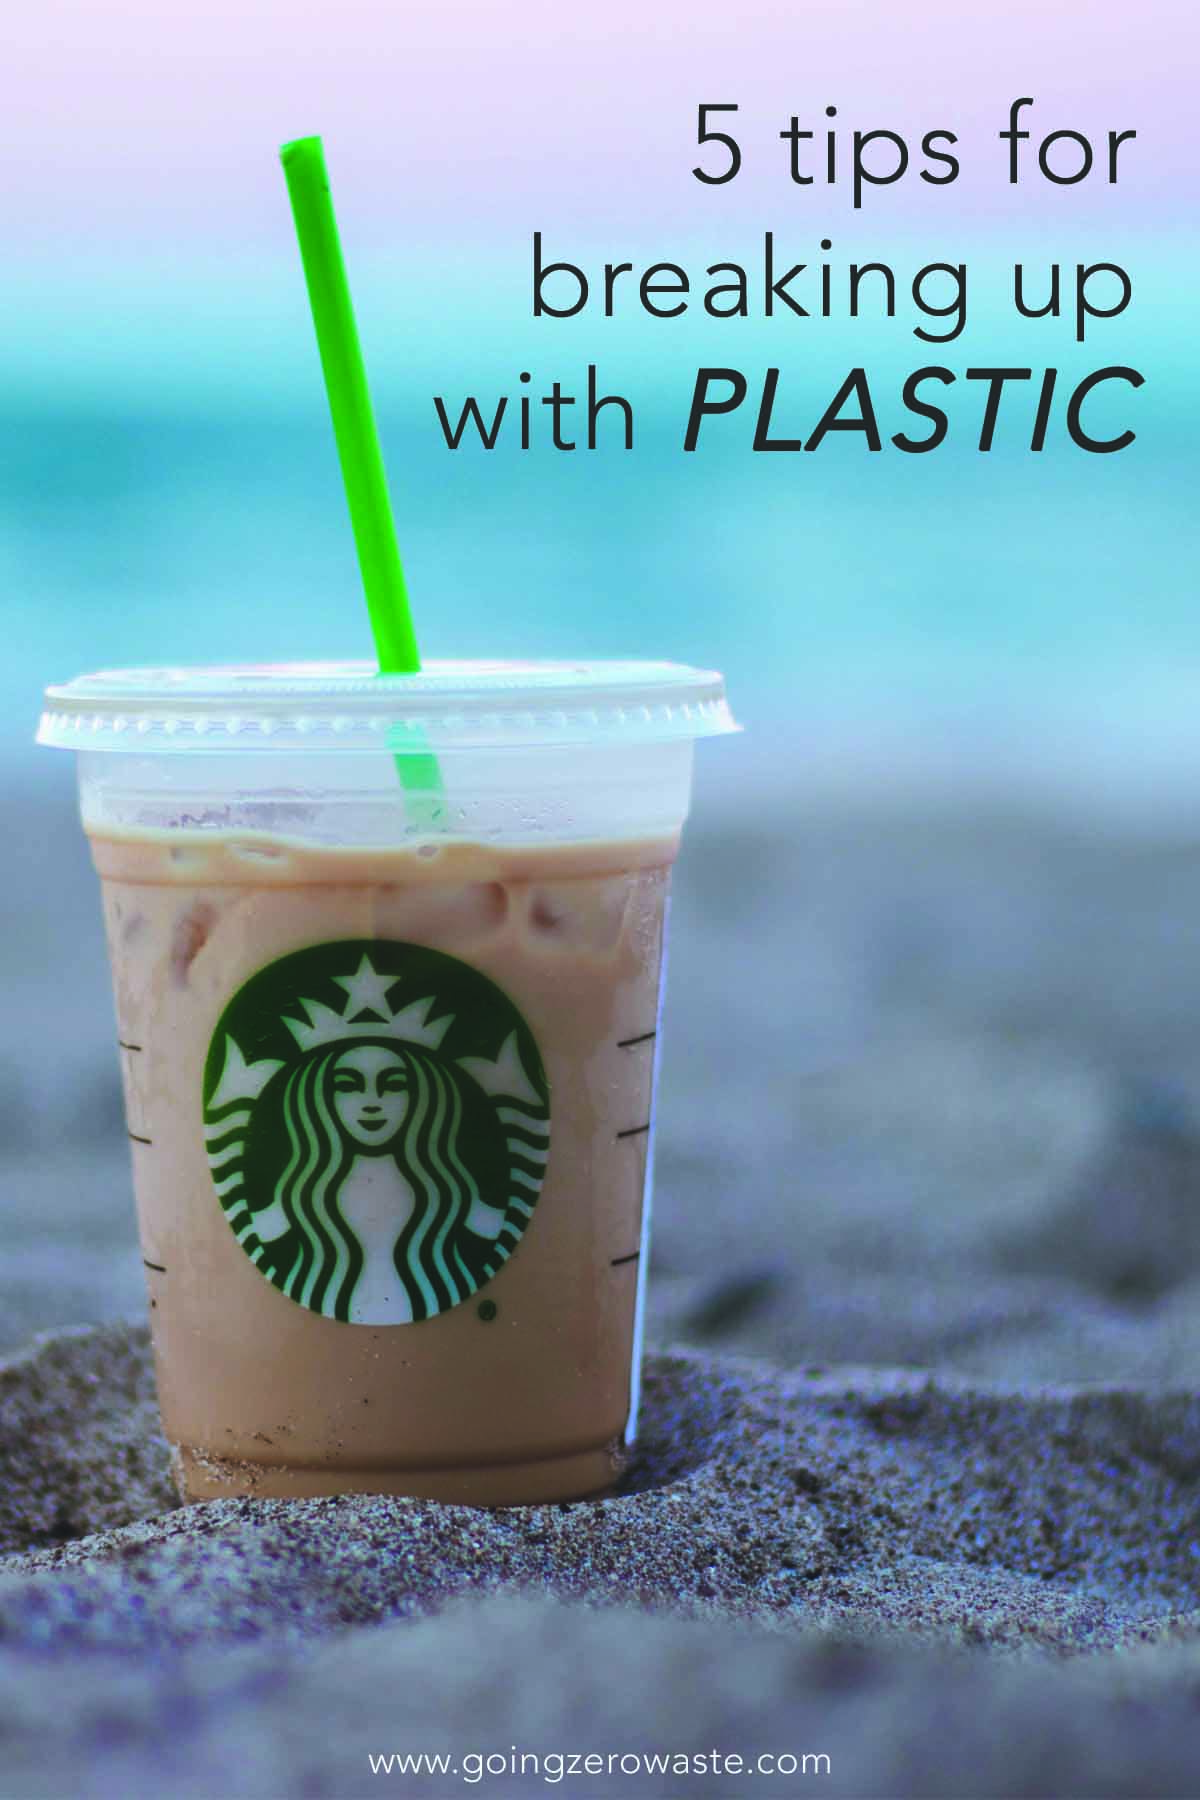 5 Tips for Breaking up with Plastic